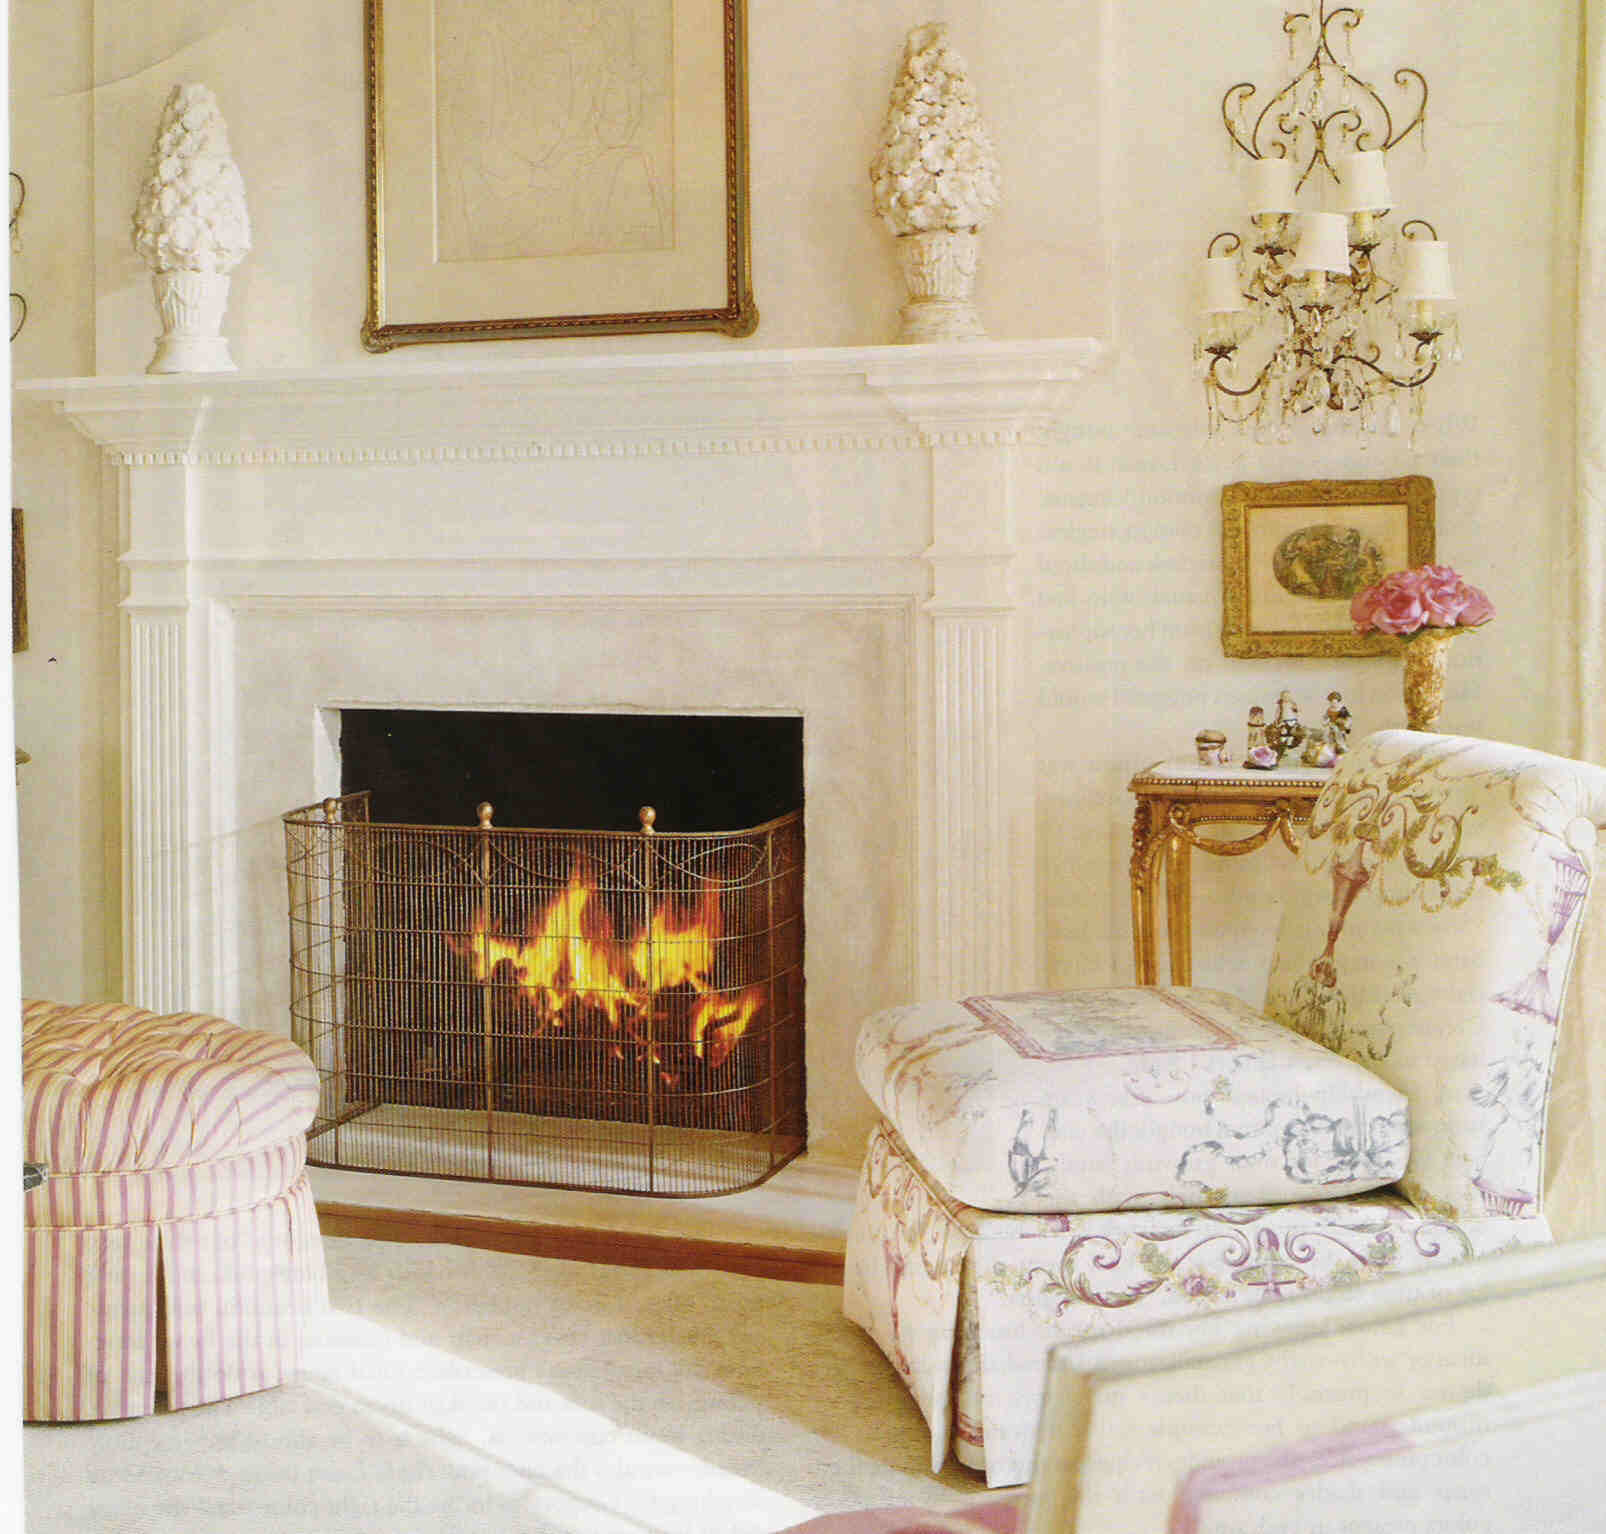 Fireplace mantel design ideas Fireplace design ideas